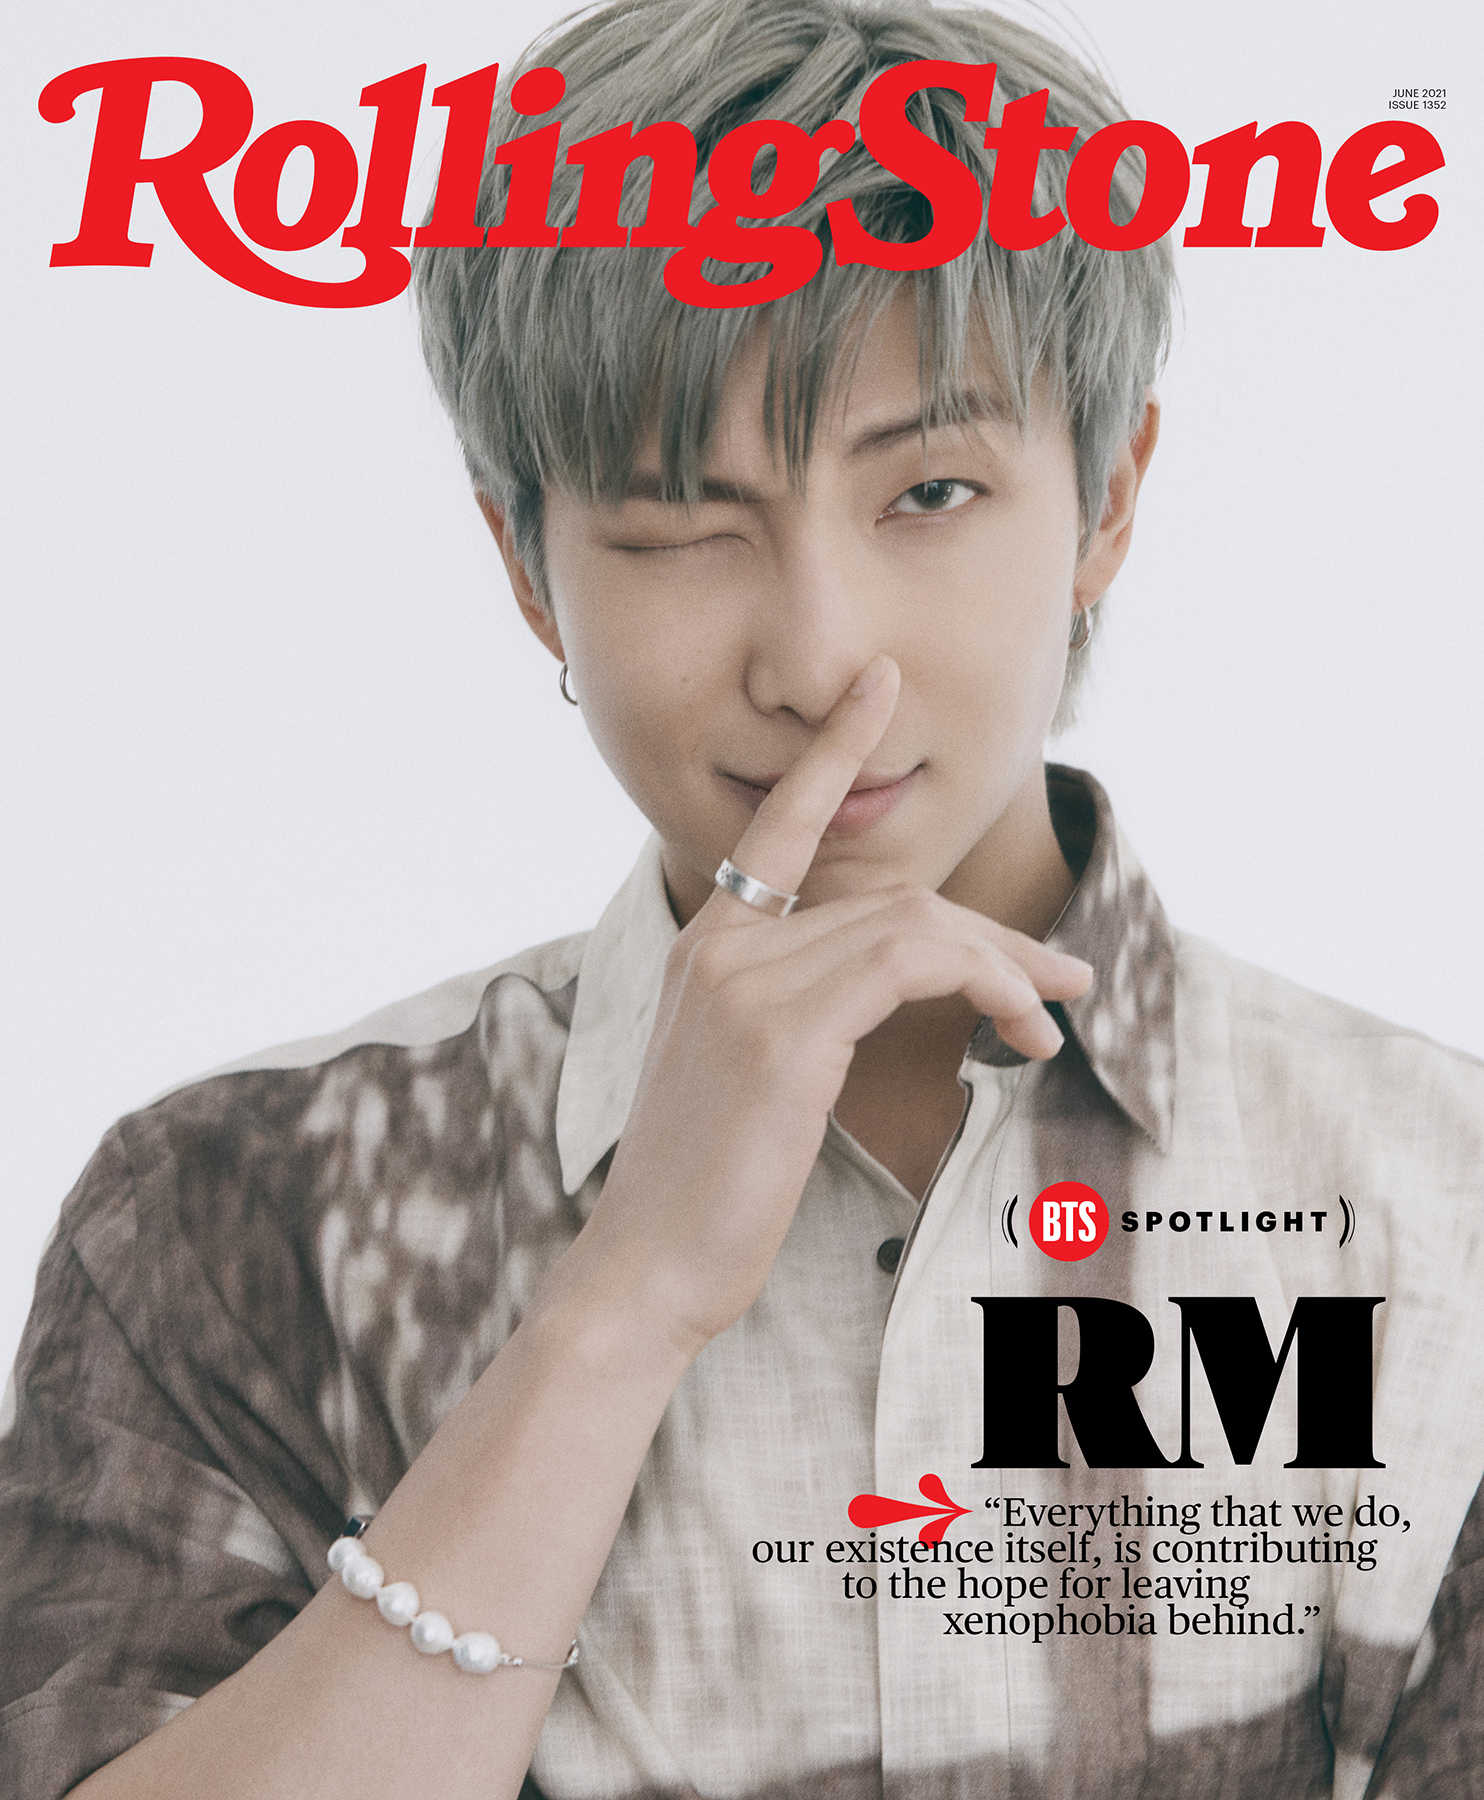 RM of BTS, photographed in Seoul on April 6th, 2021.